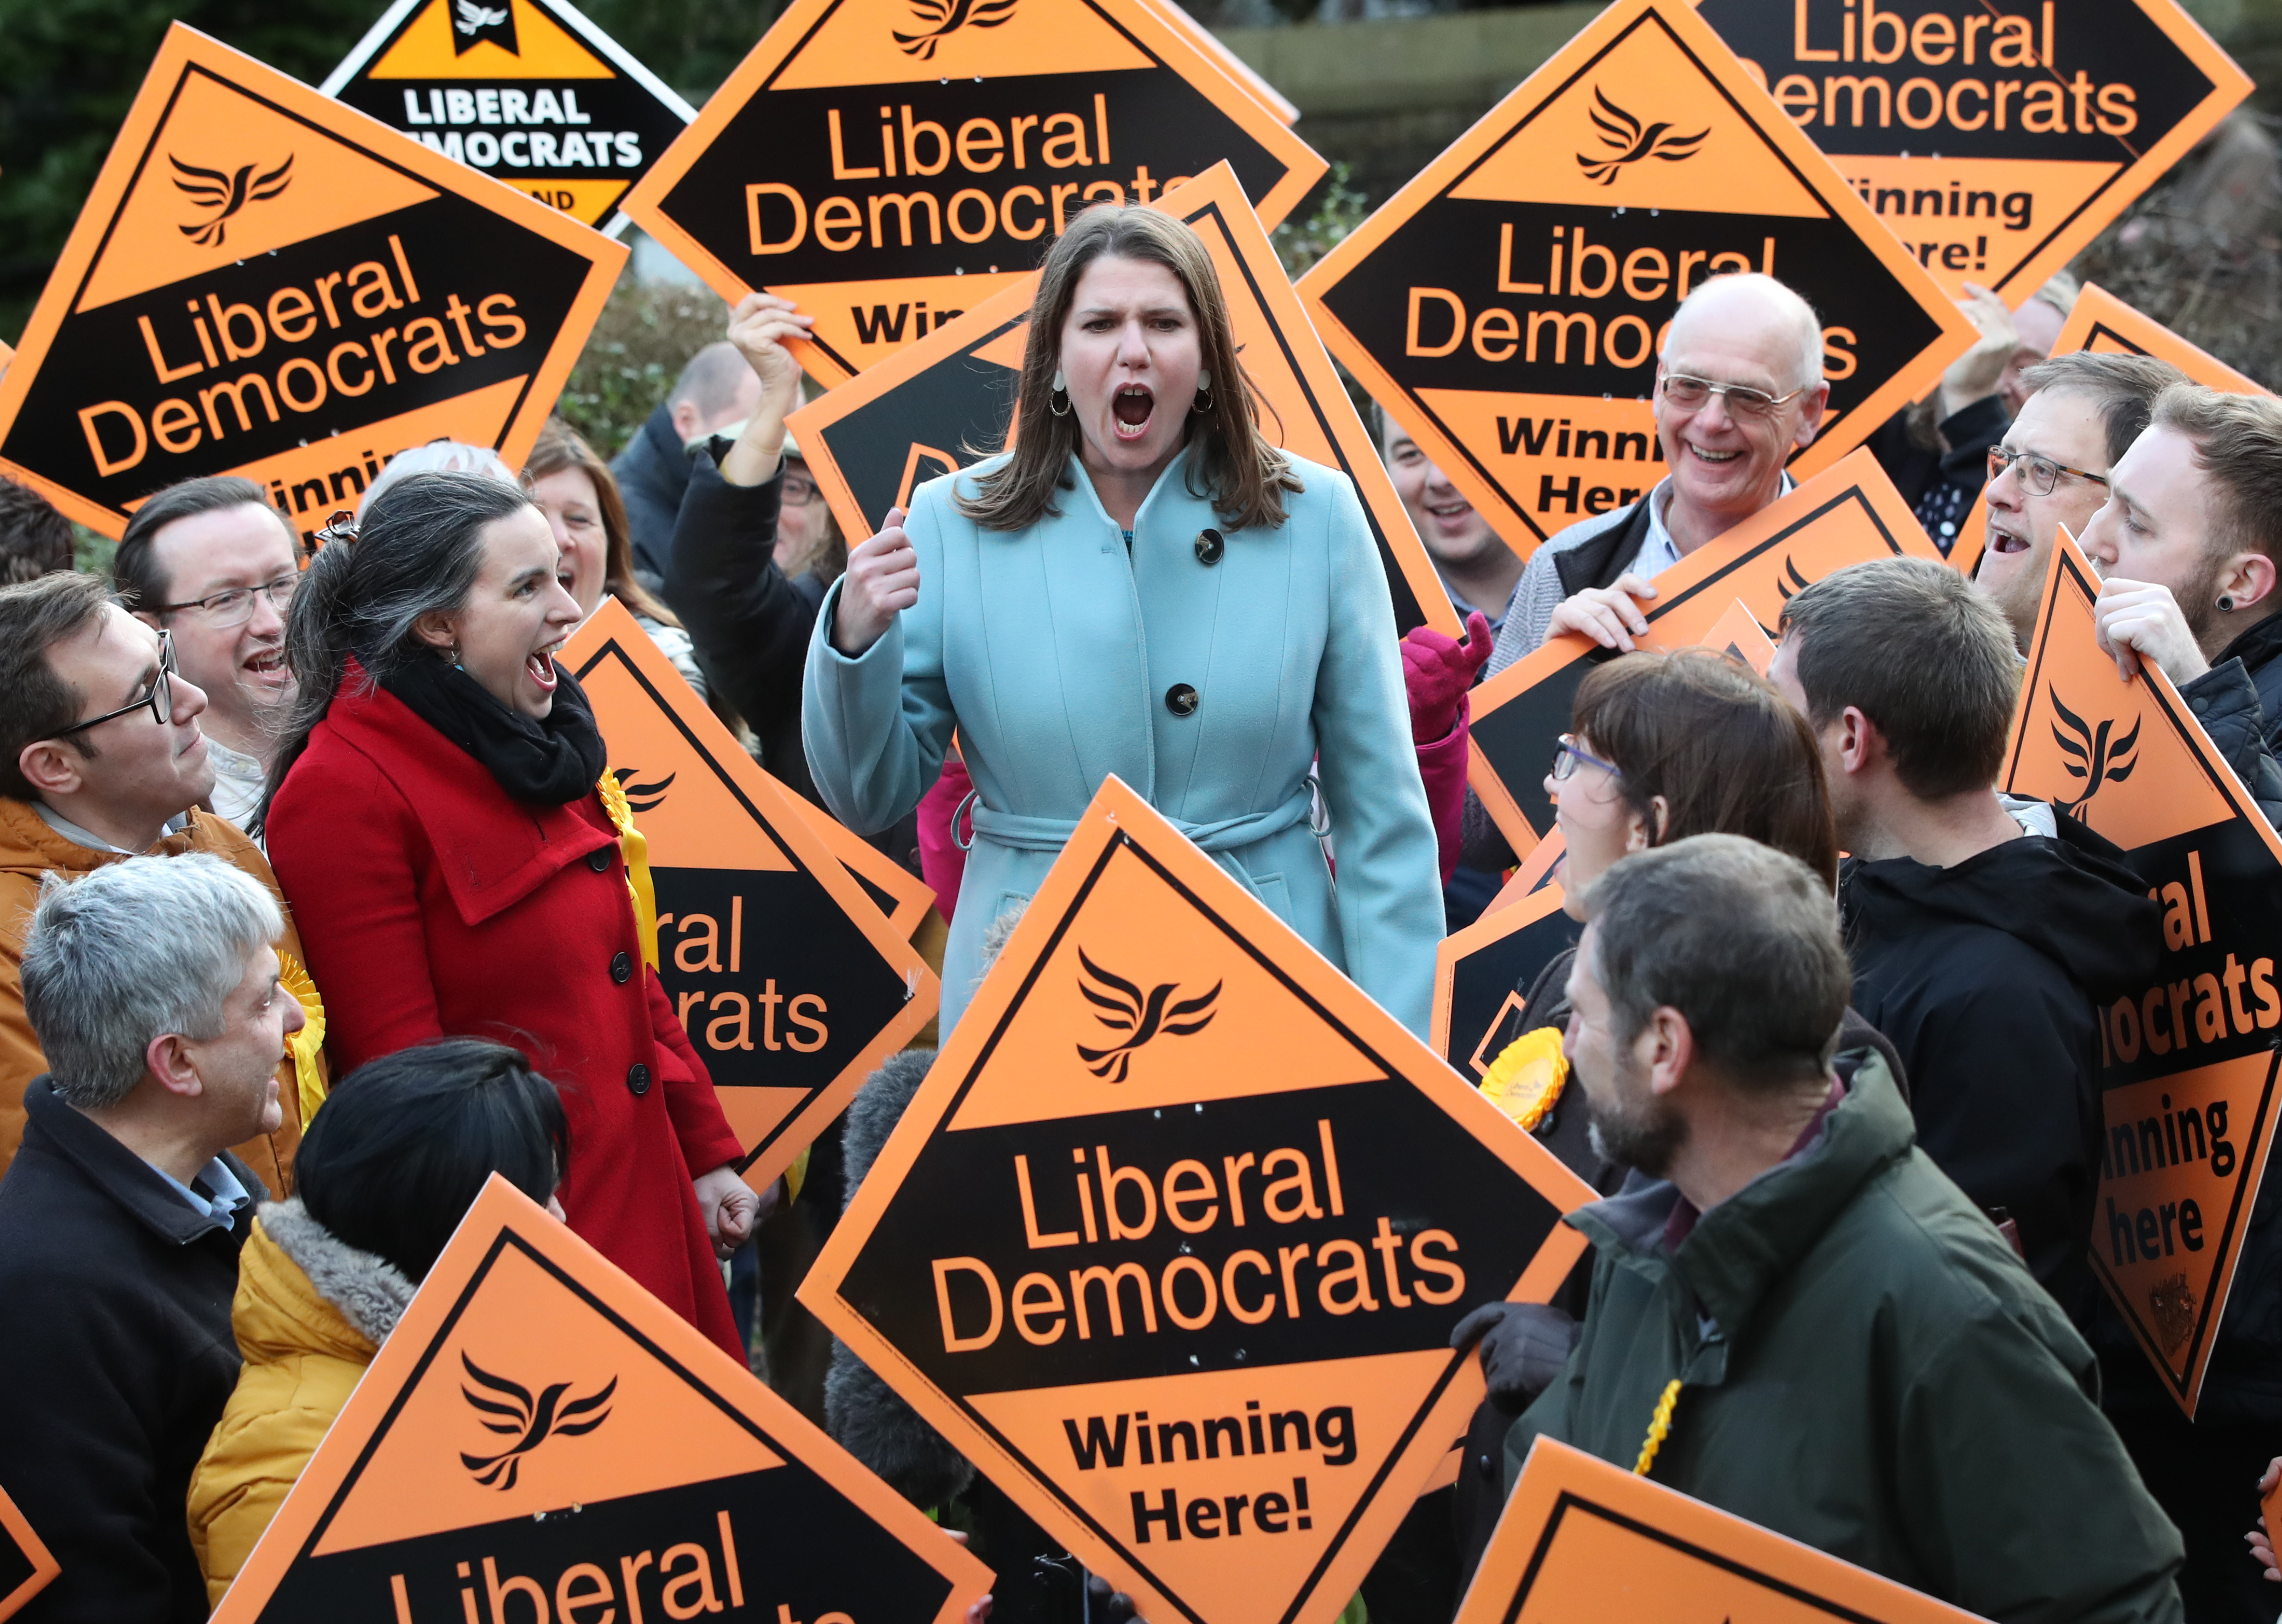 Liberal Democrat Leader Jo Swinson meets supports during a visit to Sheffield, while on the General Election campaign.